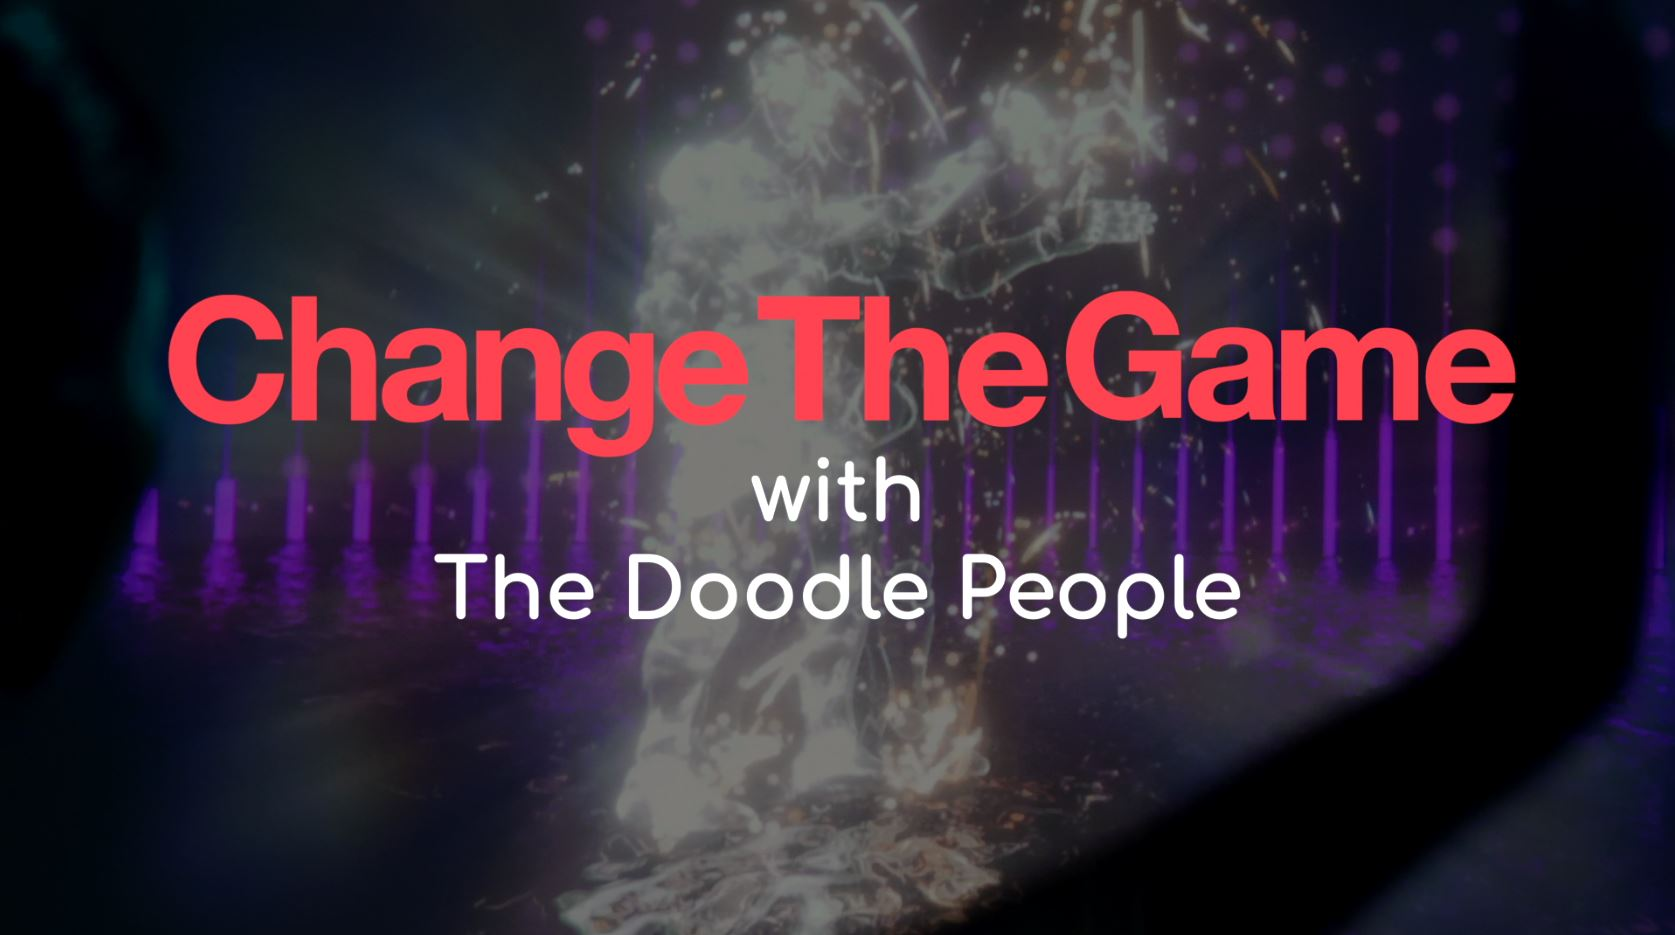 The Doodle People Change The Game with u